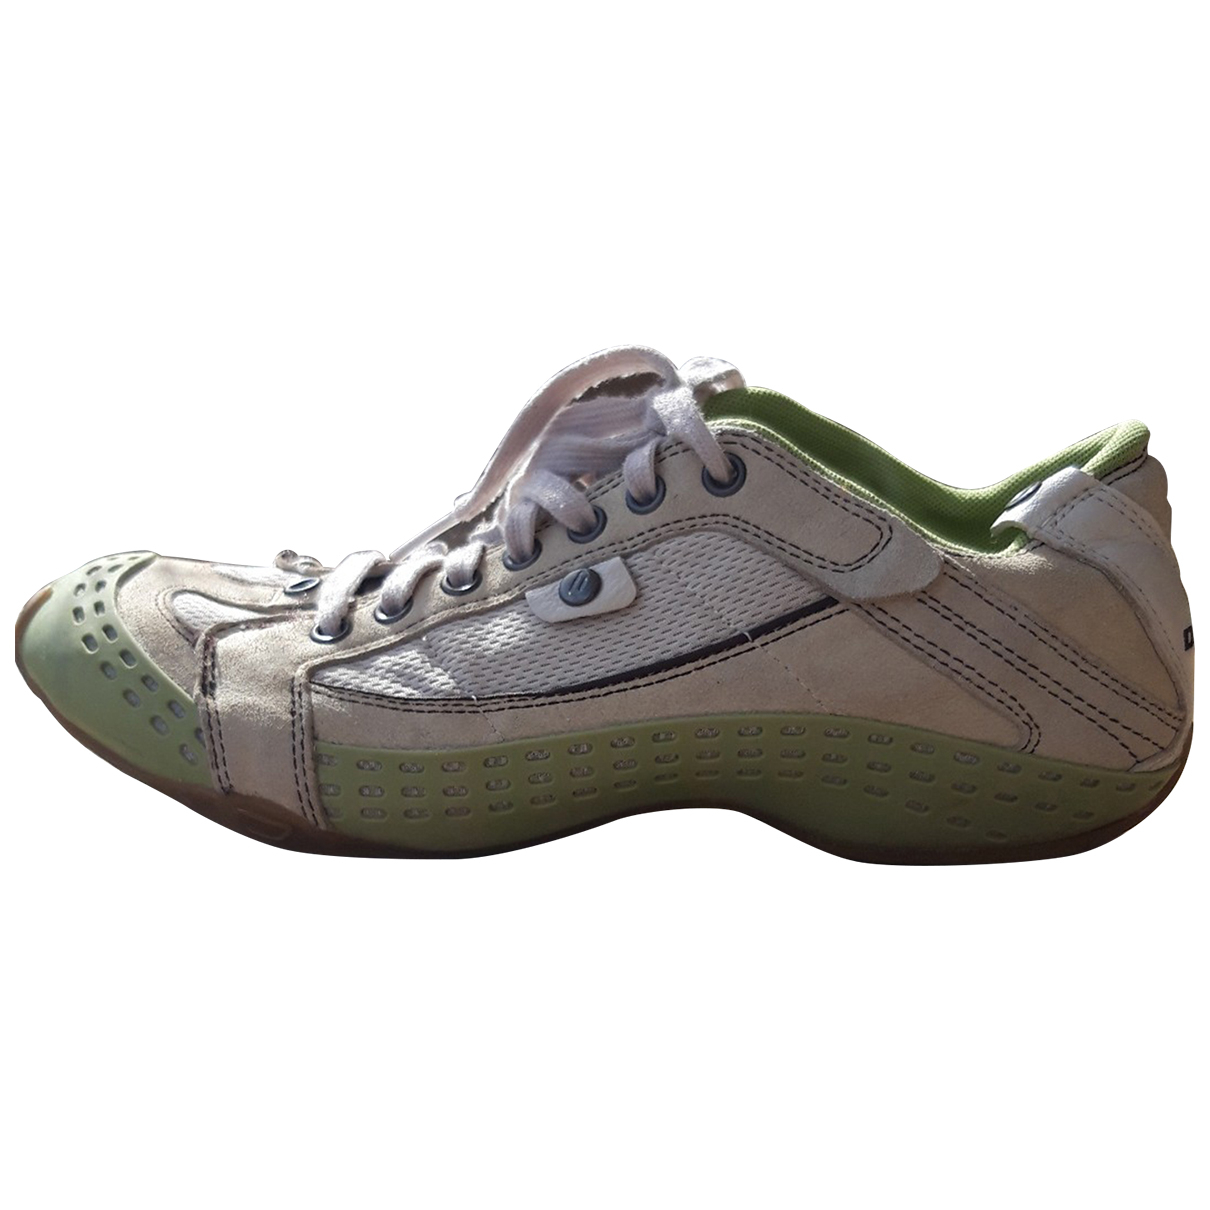 Diesel N Green Leather Trainers for Women 41 EU